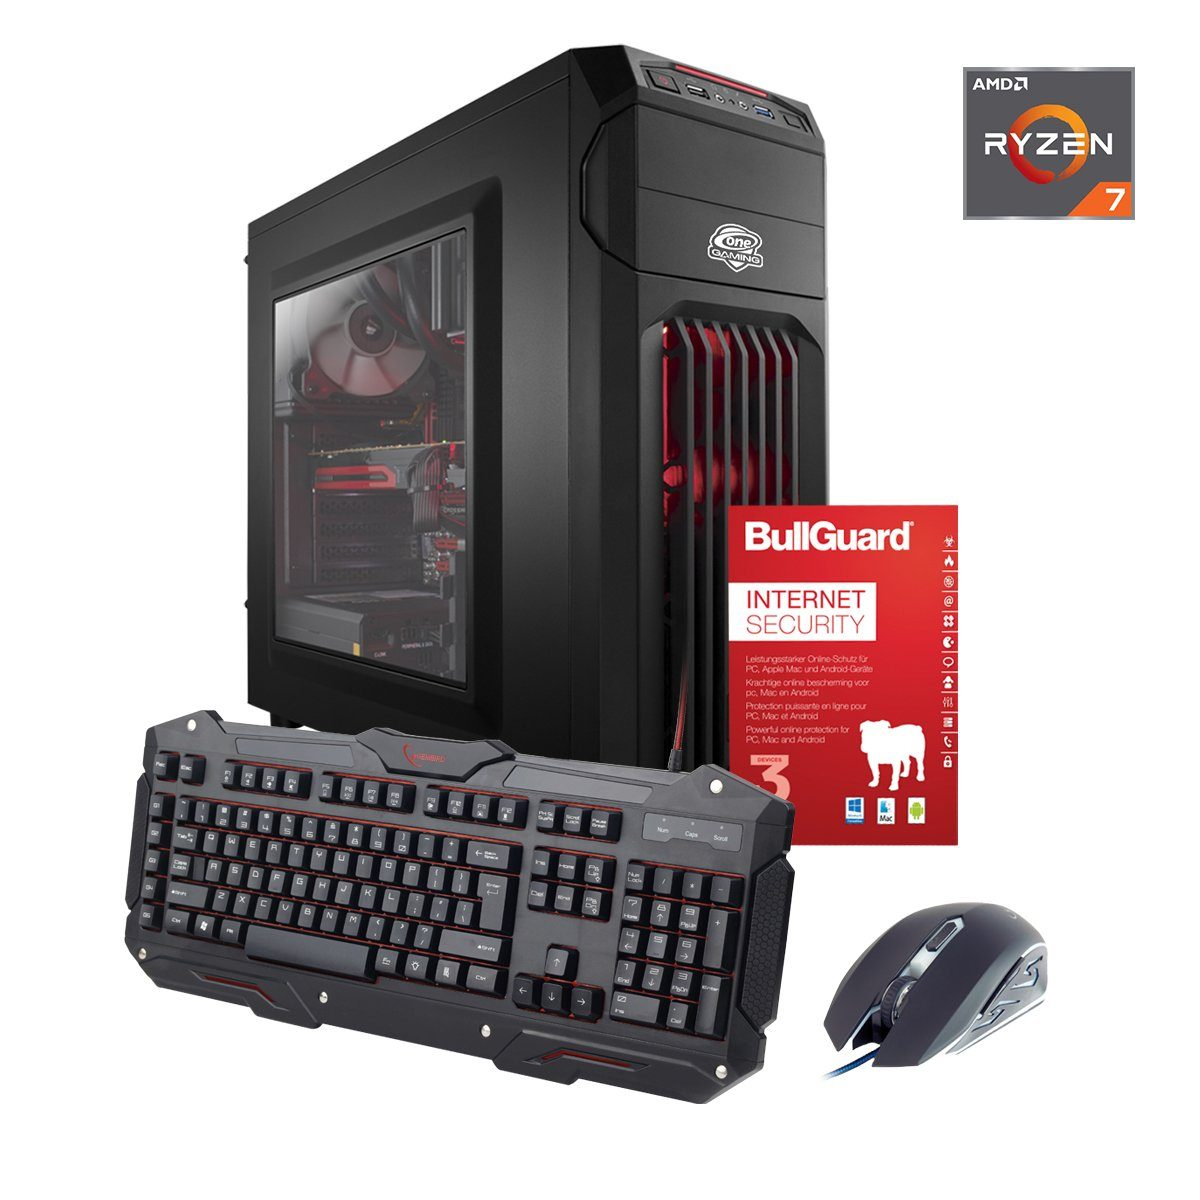 ONE GAMING PC, Ryzen 7 1800X, GeForce RTX 2080, 32GB DDR4 RAM »PC 44554«